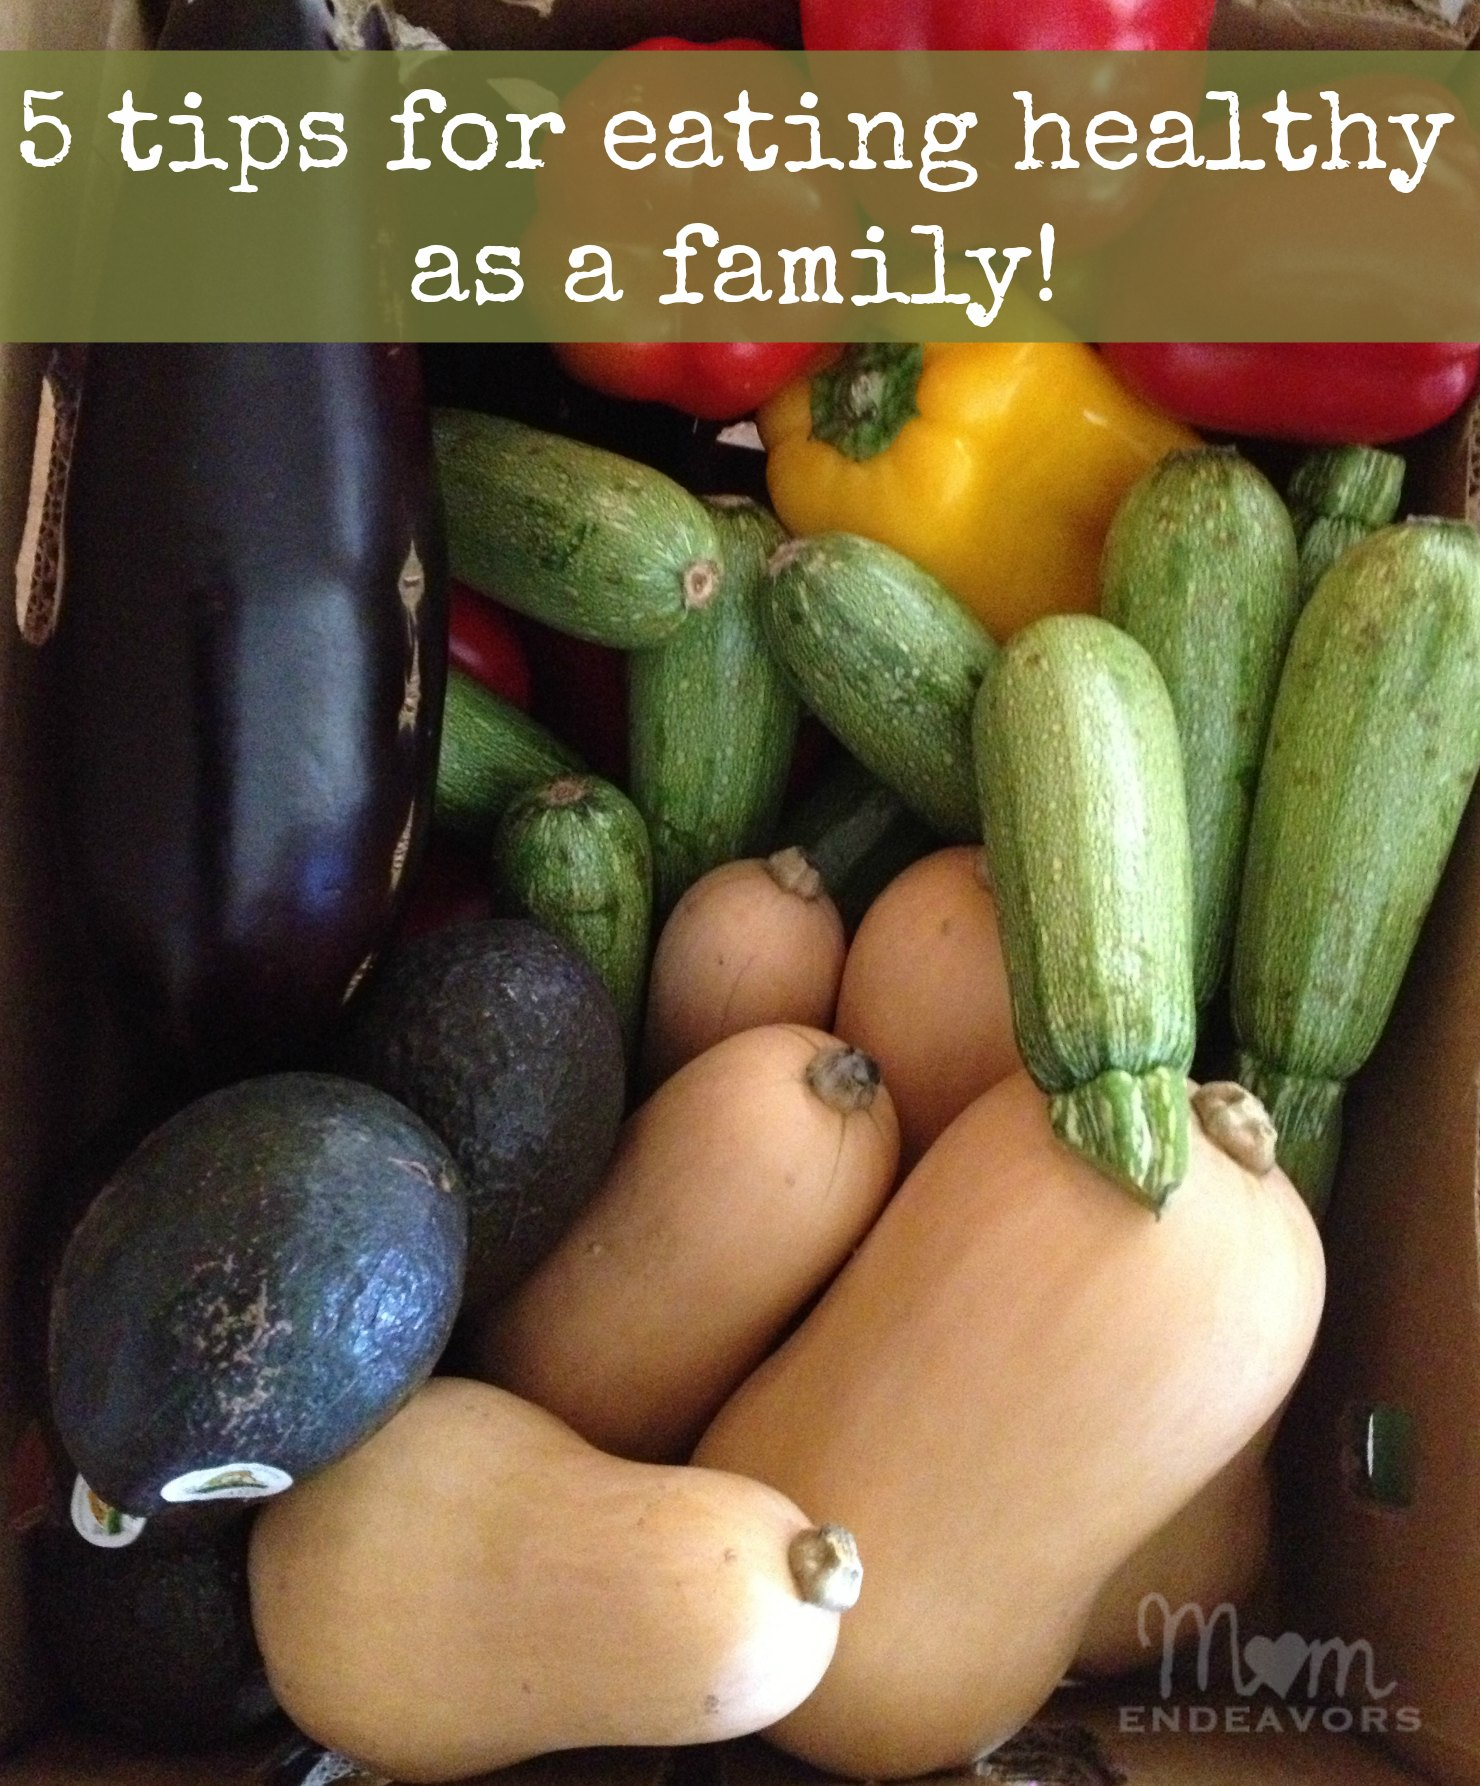 5 Tips for Eating Healthy as a Family